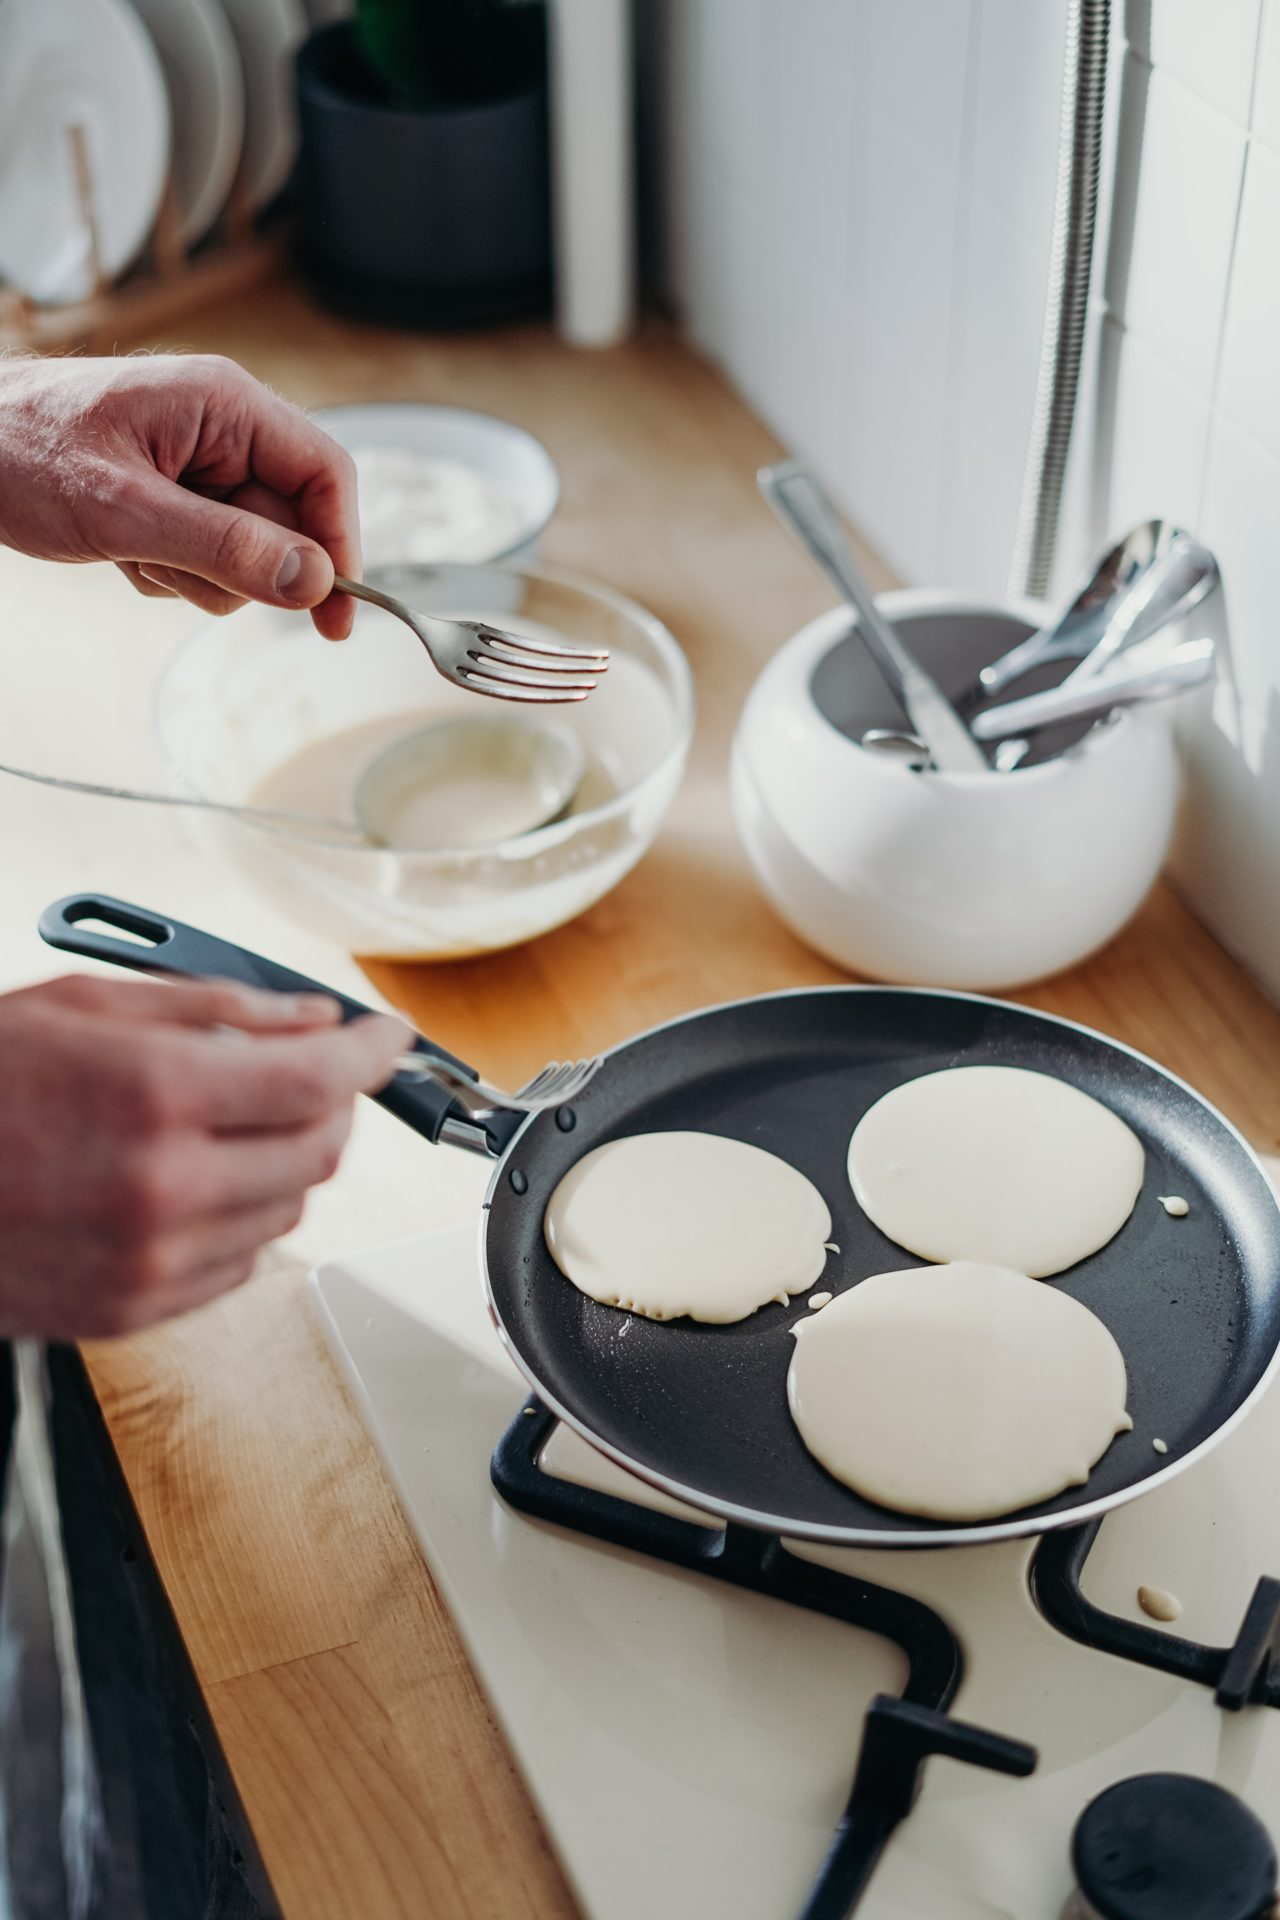 What to consider when buying a nonstick pan